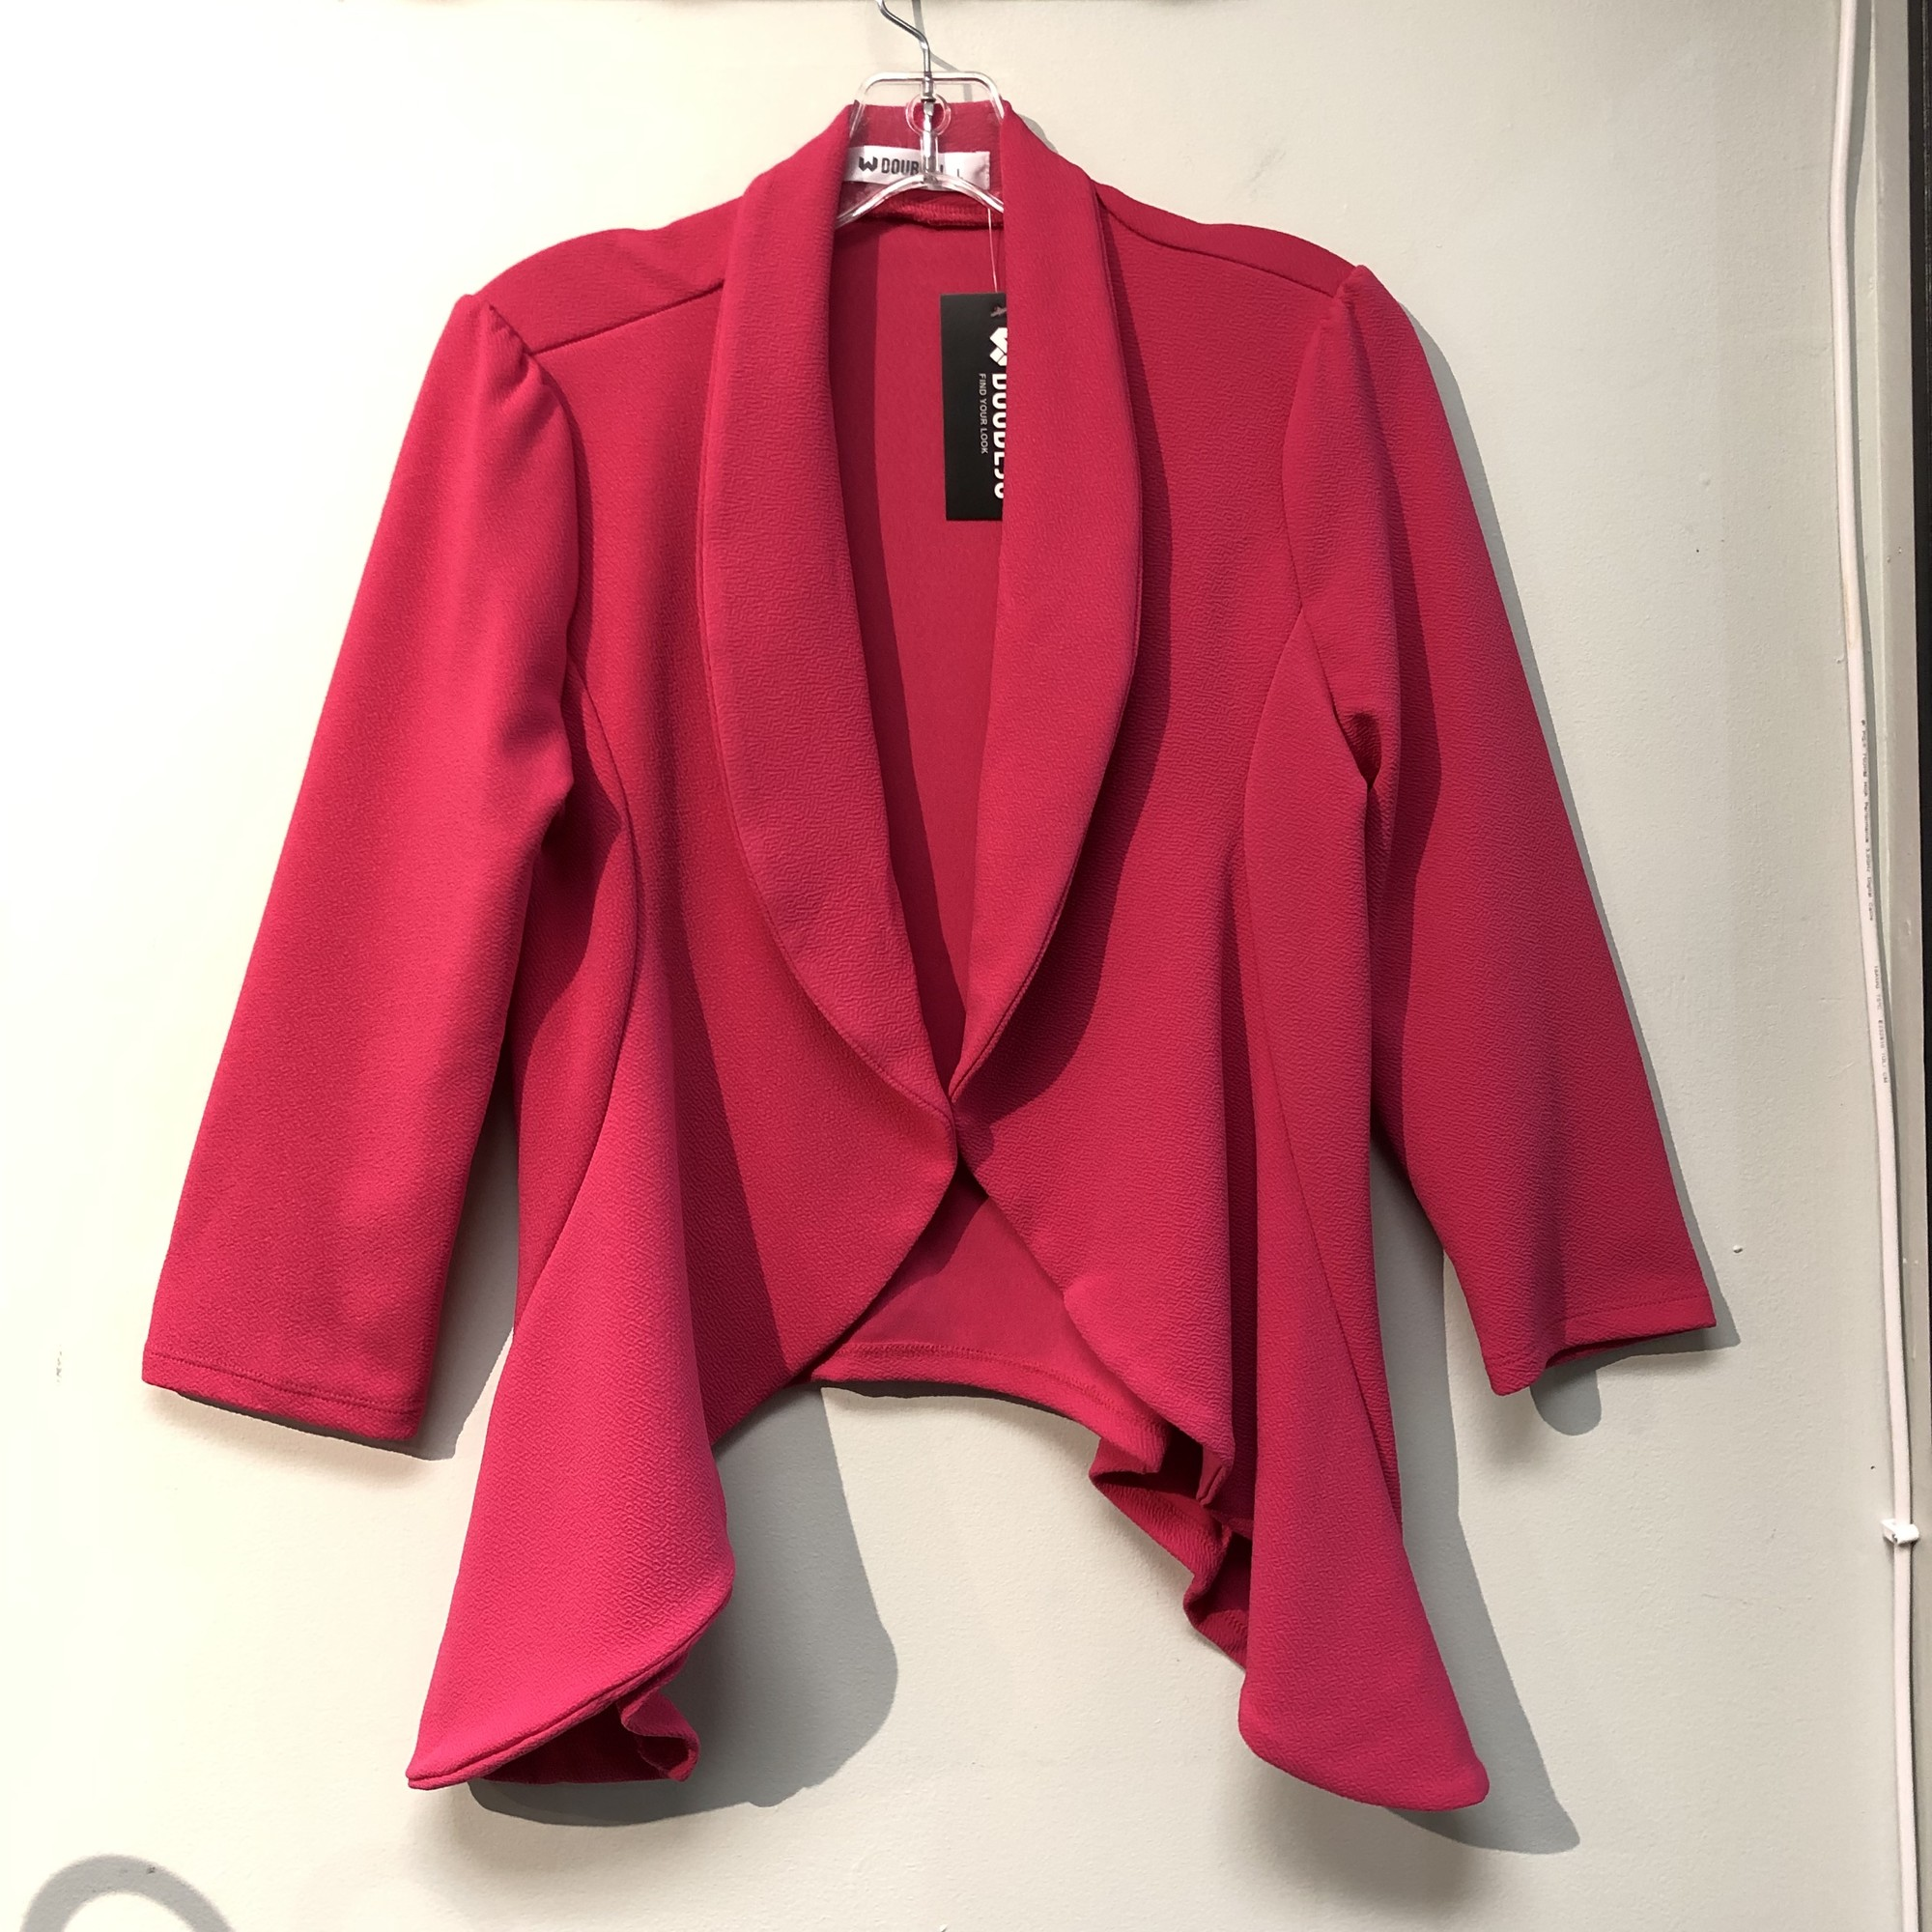 Doublju Top/Jacket<br /> Color: Hot Pink<br /> Size: Large<br /> See photos for material & care instructions